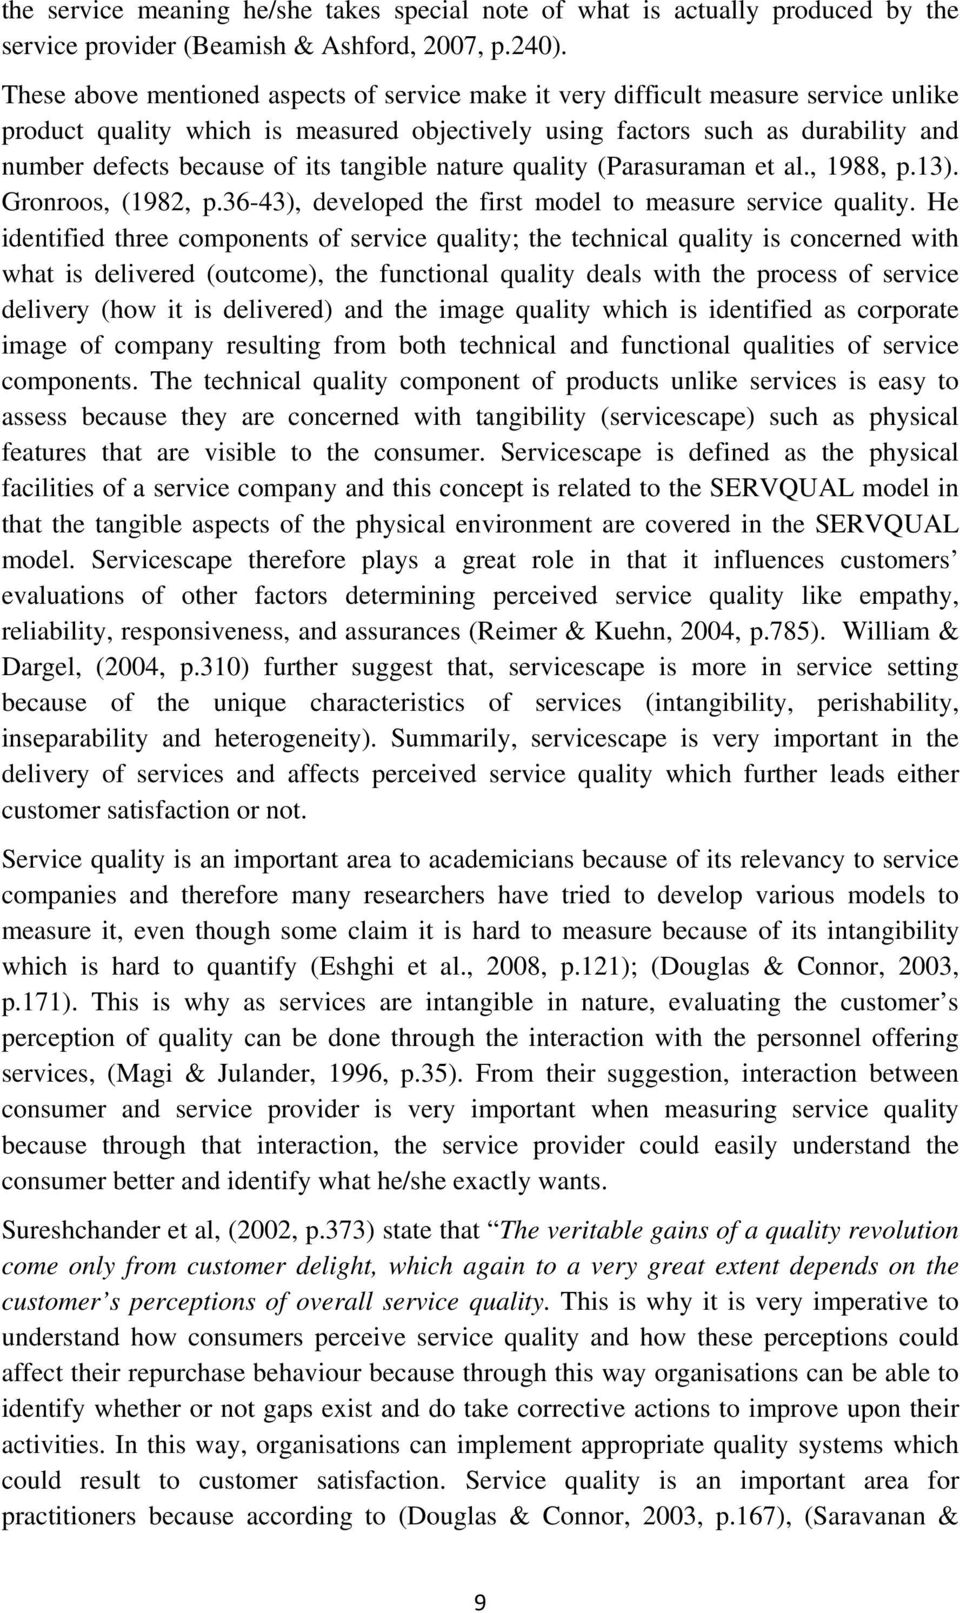 tangible nature quality (Parasuraman et al., 1988, p.13). Gronroos, (1982, p.36-43), developed the first model to measure service quality.